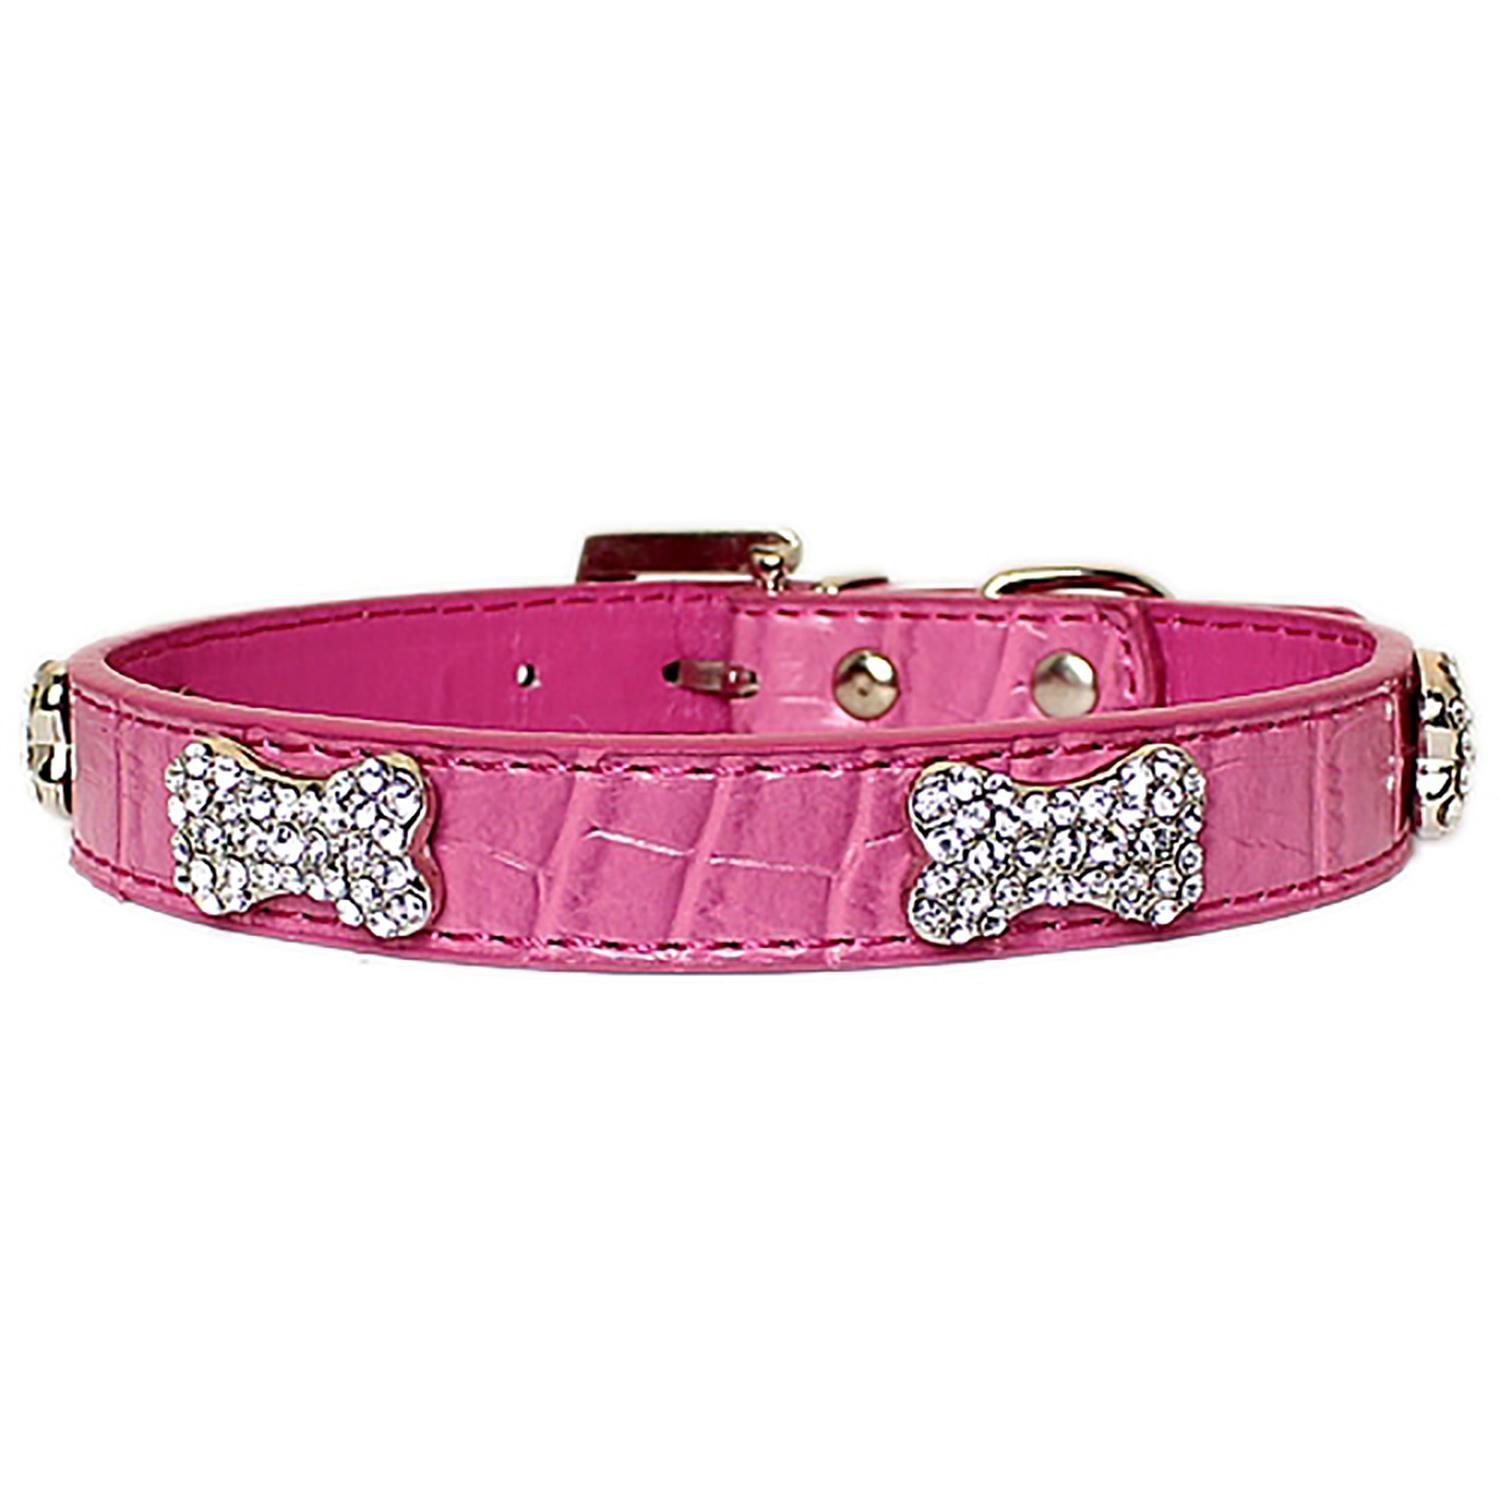 Parisian Pet Luxury Croc & Rhinestone Bones Dog Collar - Pink